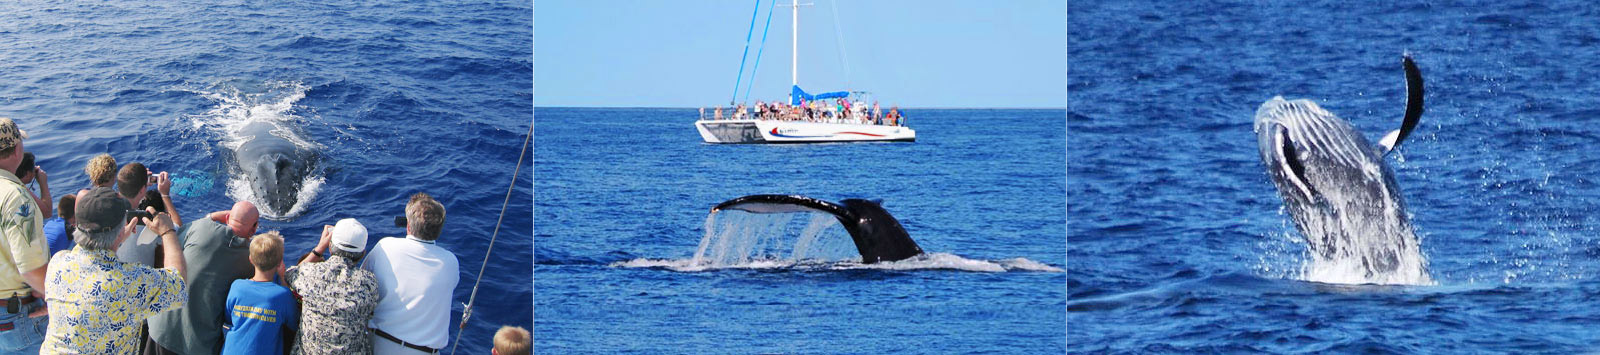 Humpback Whale Sightings and Statistics